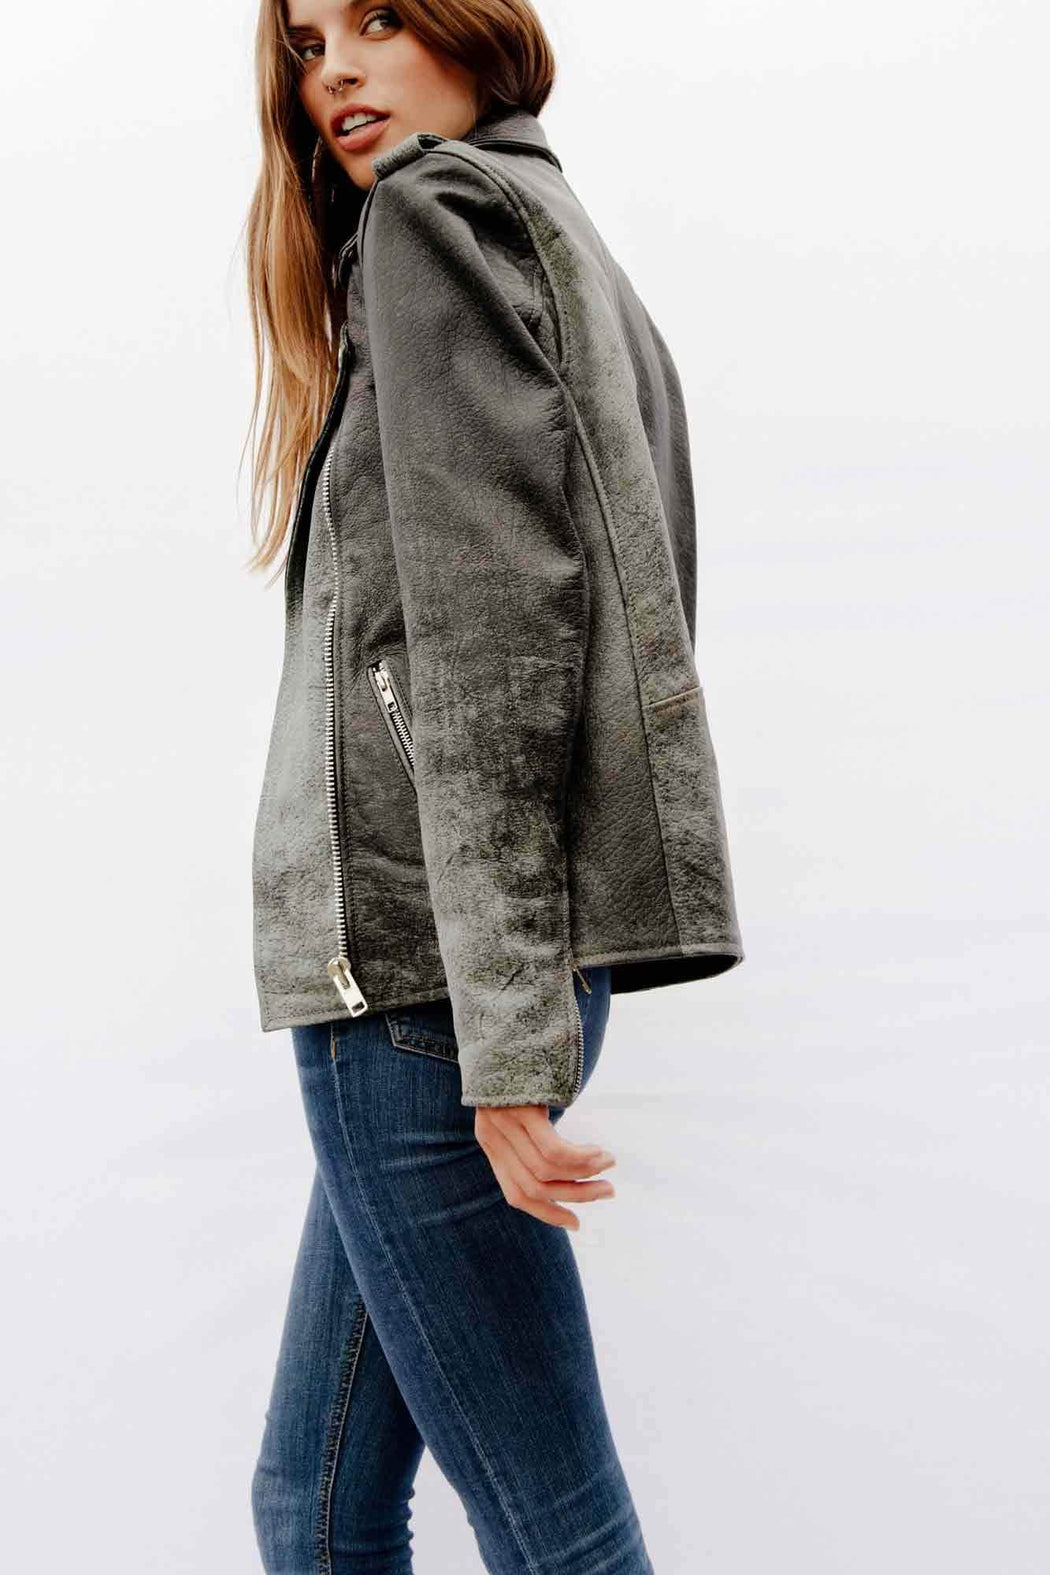 DISTRESSED OVERSIZED EASY RIDER